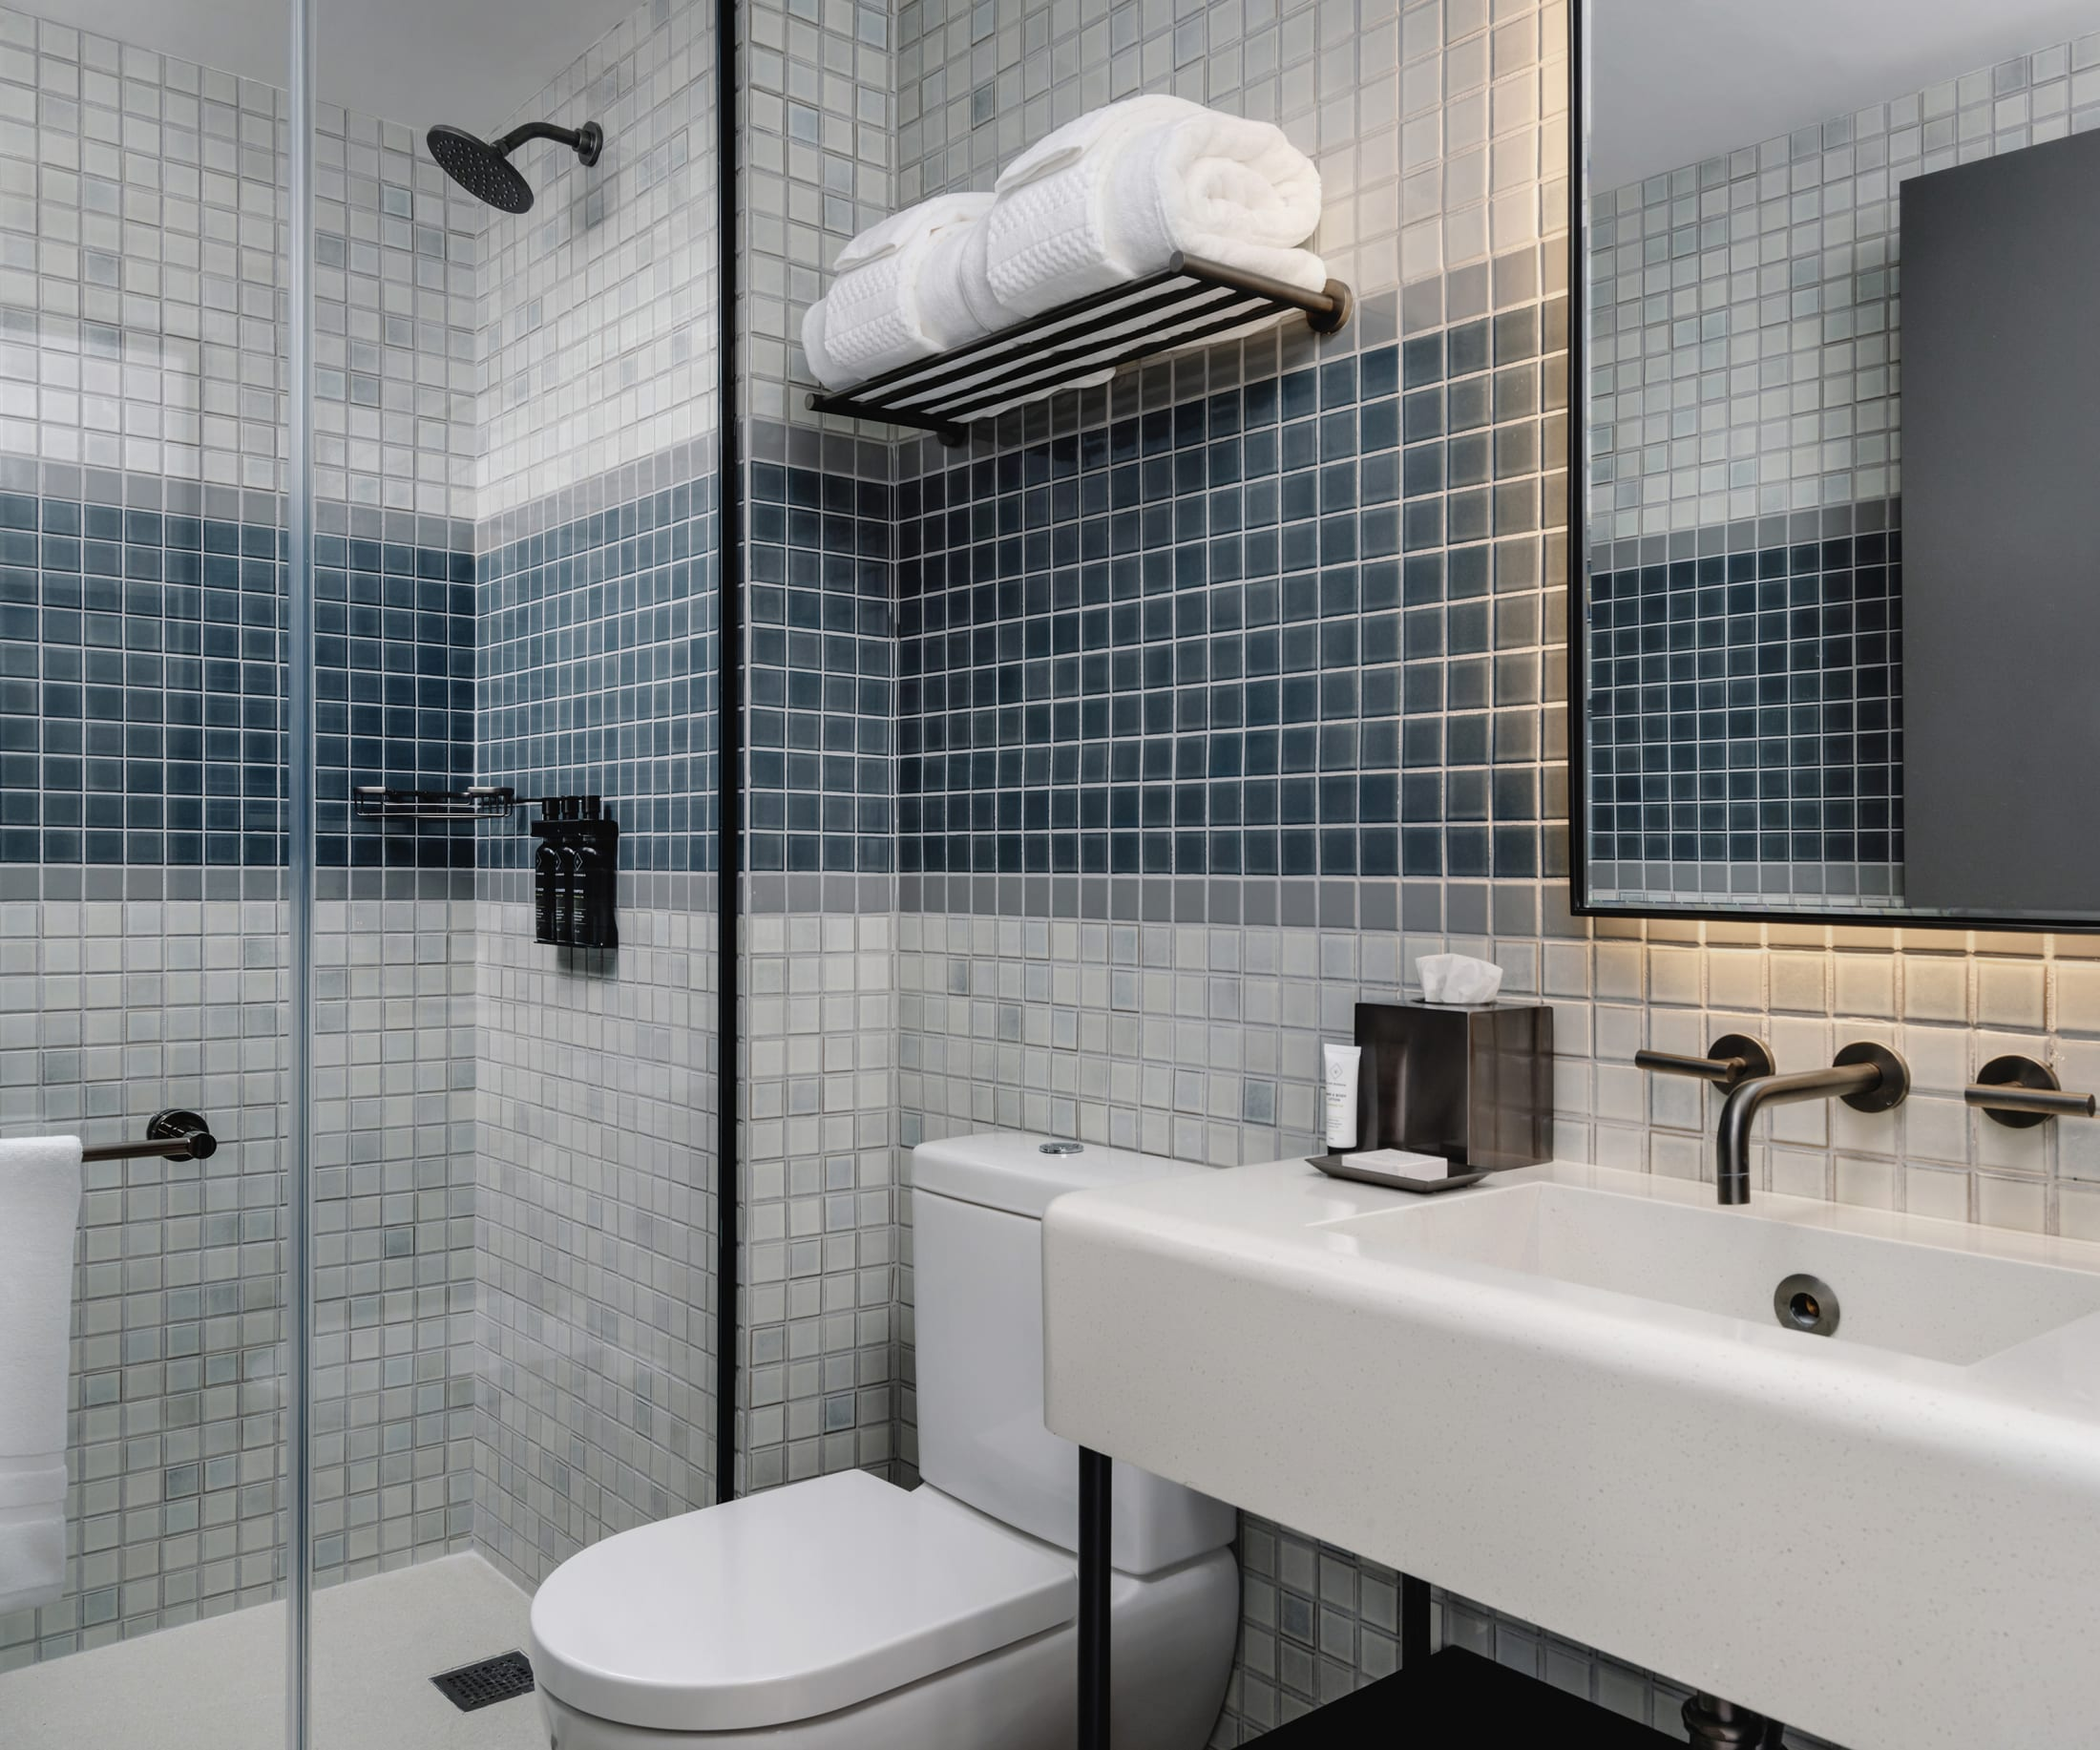 blue and gray tiled bathroom walls with glass shower on the left and backlit mirror above white sink on the right